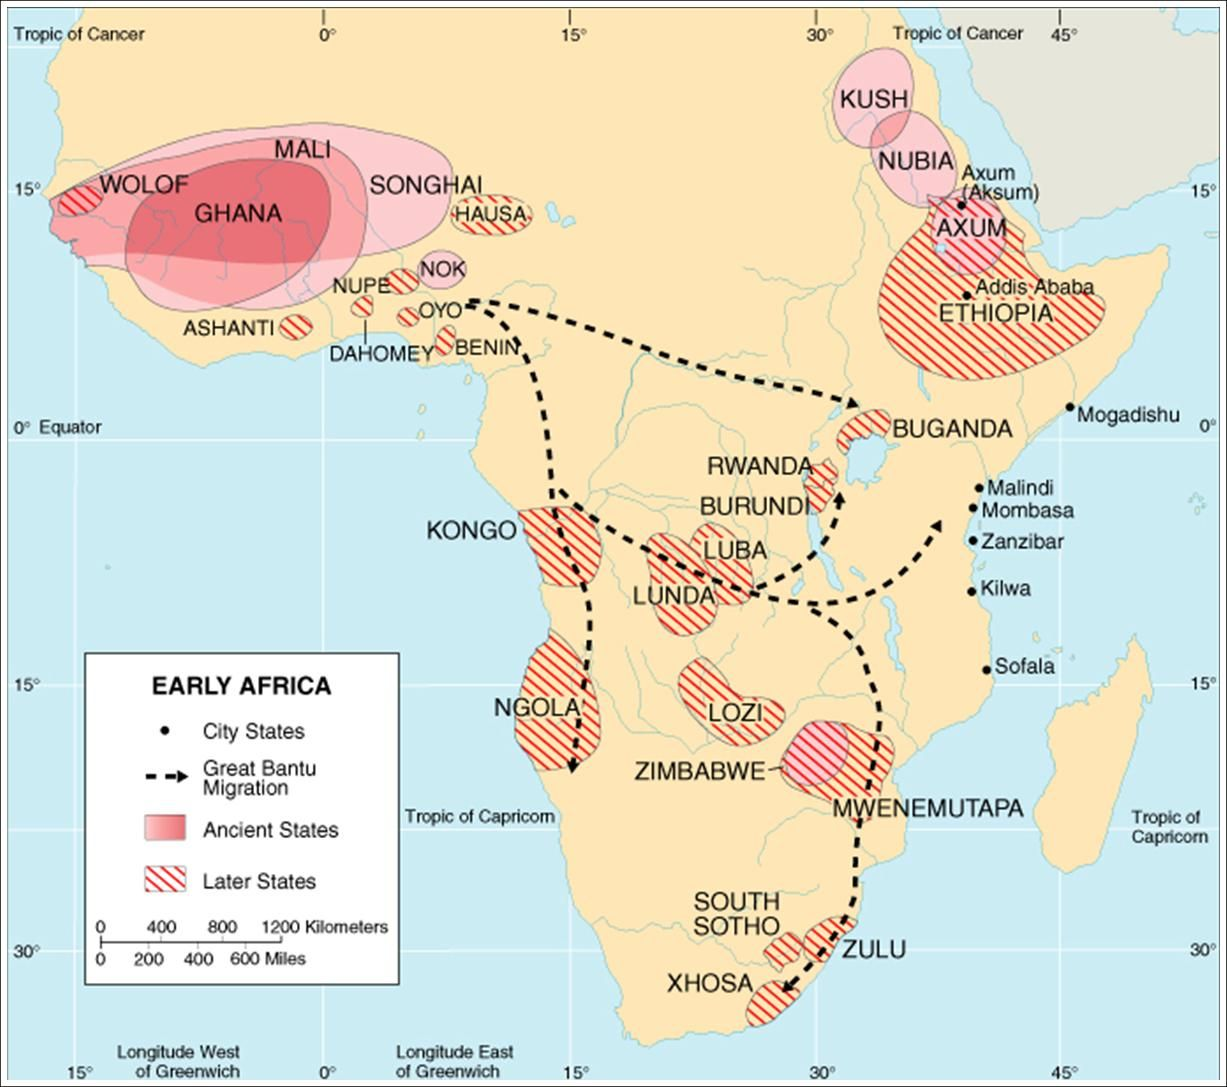 Ancient African Kingdoms. Mystery of History Volume 2 ... on geographical map of africa, current map of africa, blank map of africa, map of the founding of rome, map of africa with countries, climate map of africa, map of medieval africa, map of identity, map of contemporary africa, big map of africa, map of north america, map of cush, map of italian africa, map of norway africa, map of mesopotamia, map of china, map of middle east, map of east africa, map of earth africa, map of historical africa,